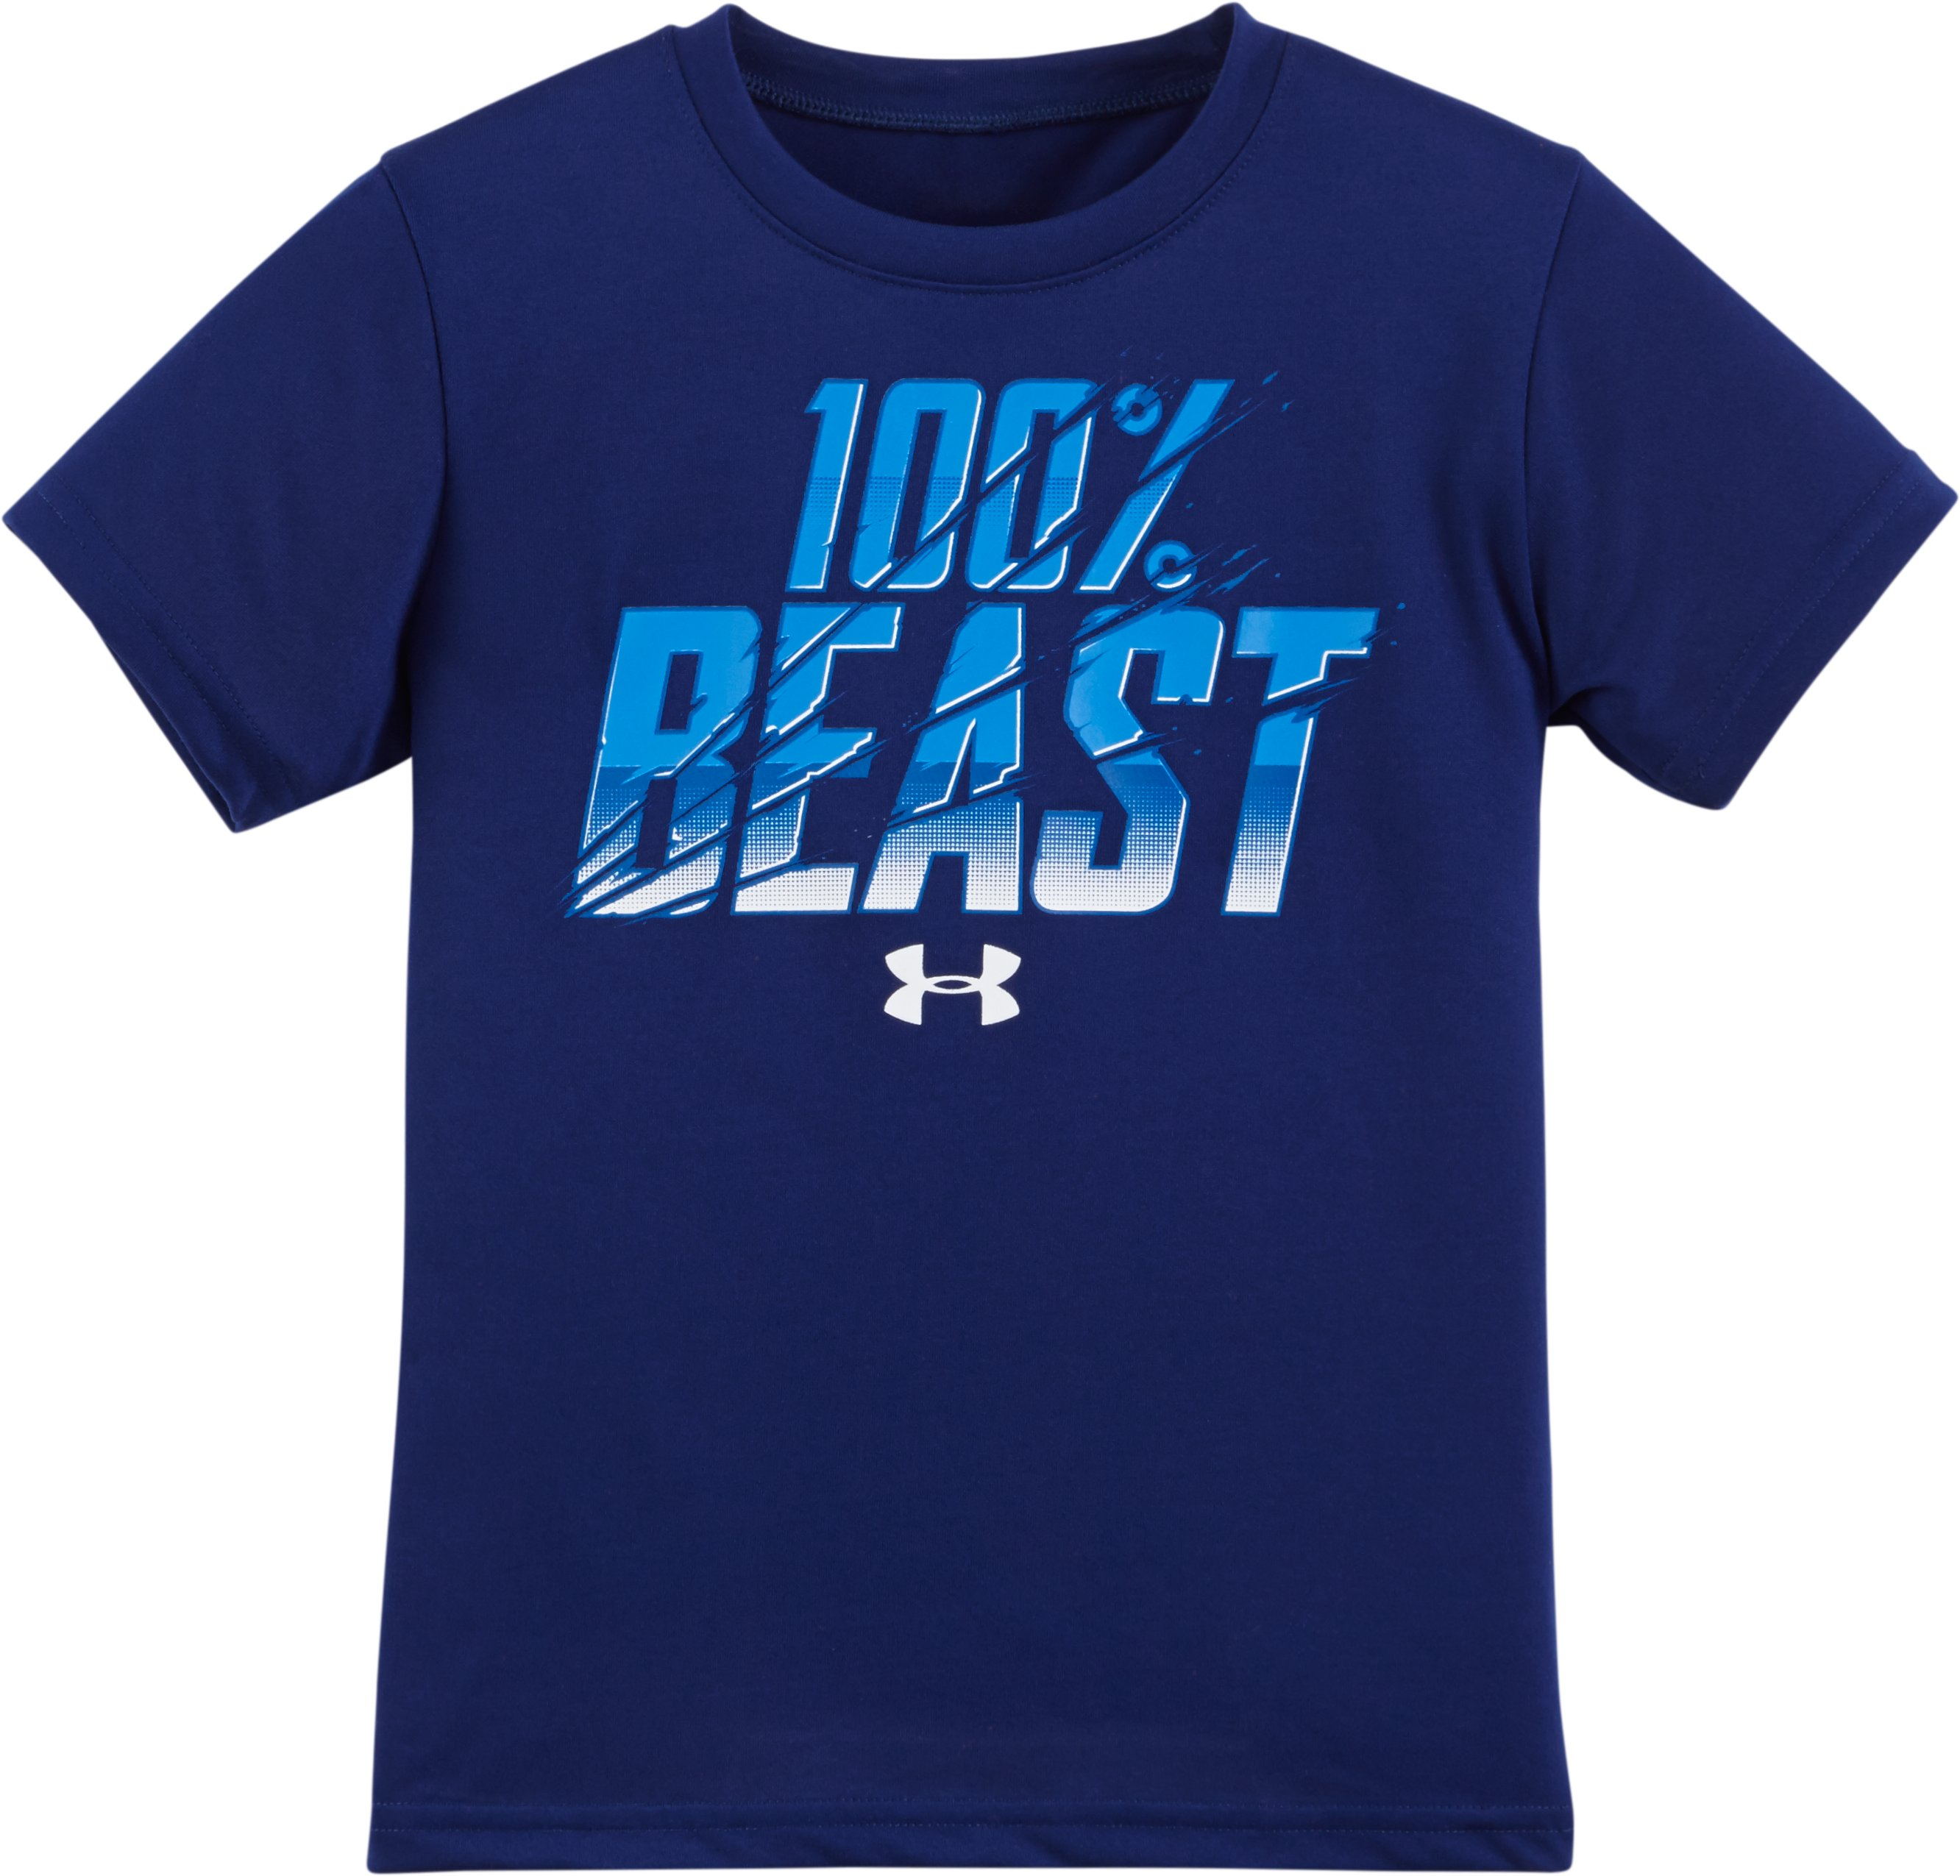 Boys' Infant UA 100% Beast Short Sleeve T-Shirt, Caspian, Laydown